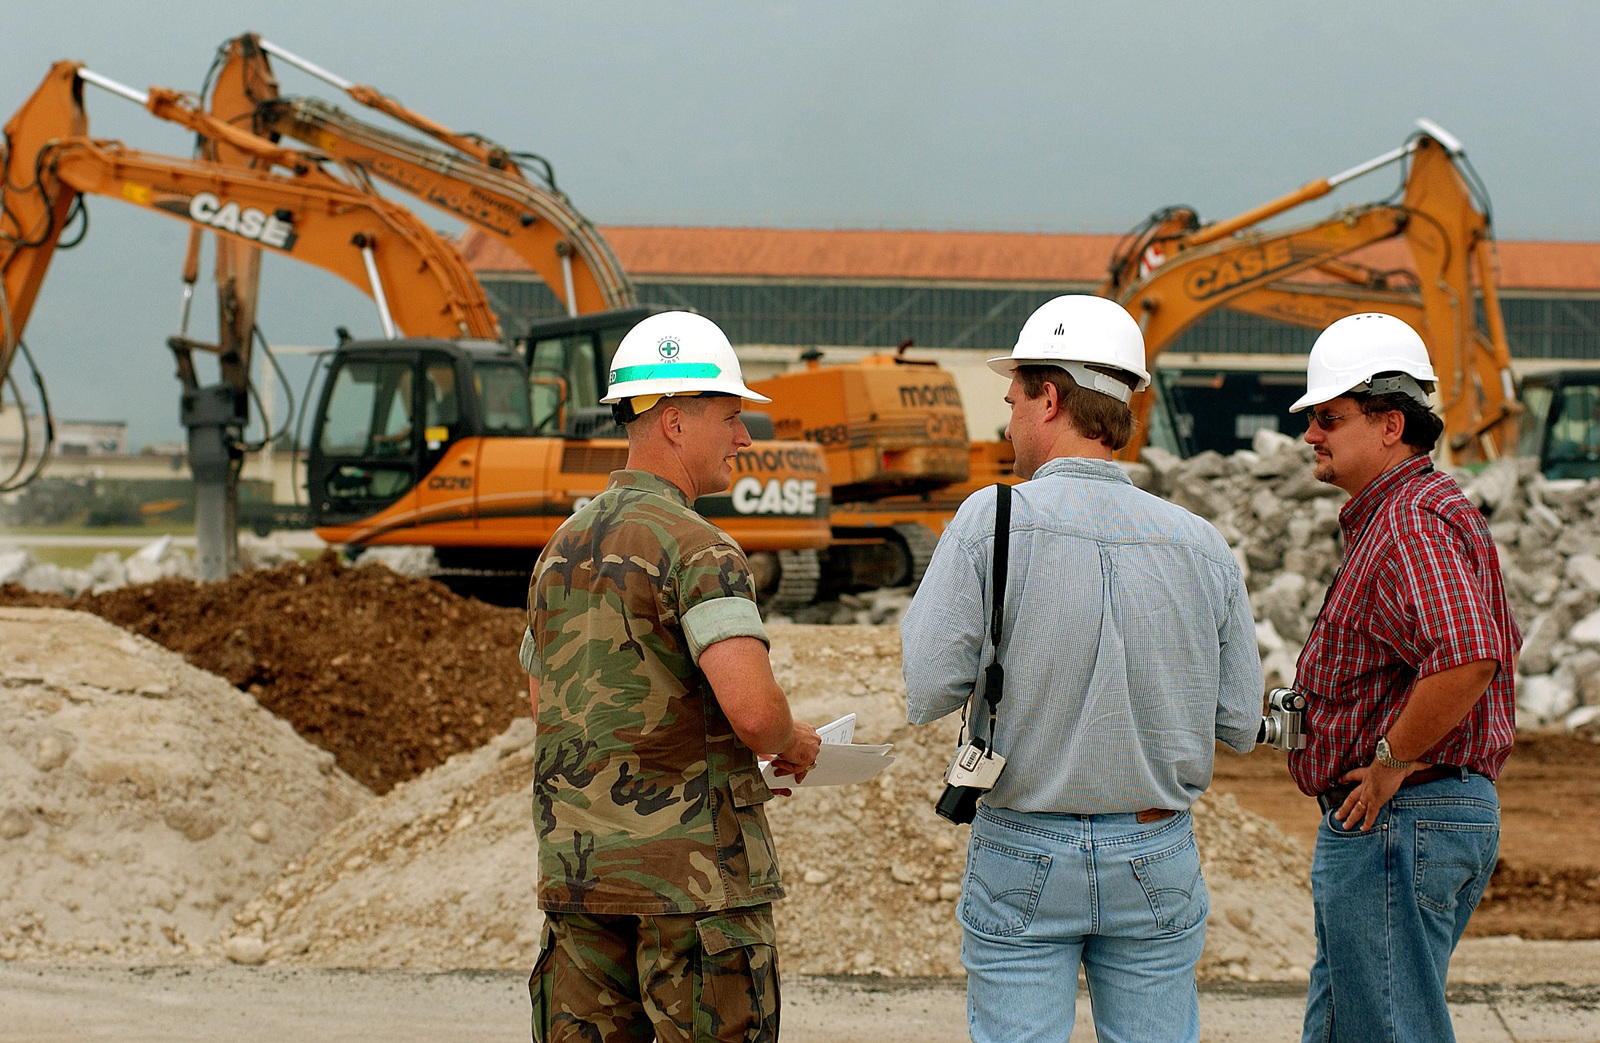 US Air Force (USAF) Lieutenant Commander (LCDR) Scot Sanders, left, Resident Officer in Charge of Construction, Kent Harris, center, a reporter with Stars and Stripes along with Aleksander Andrzejewski, from the 16th Air Force Plans Management Office (PMO), discuss a paving project at Aviano Air Base (AB), Italy